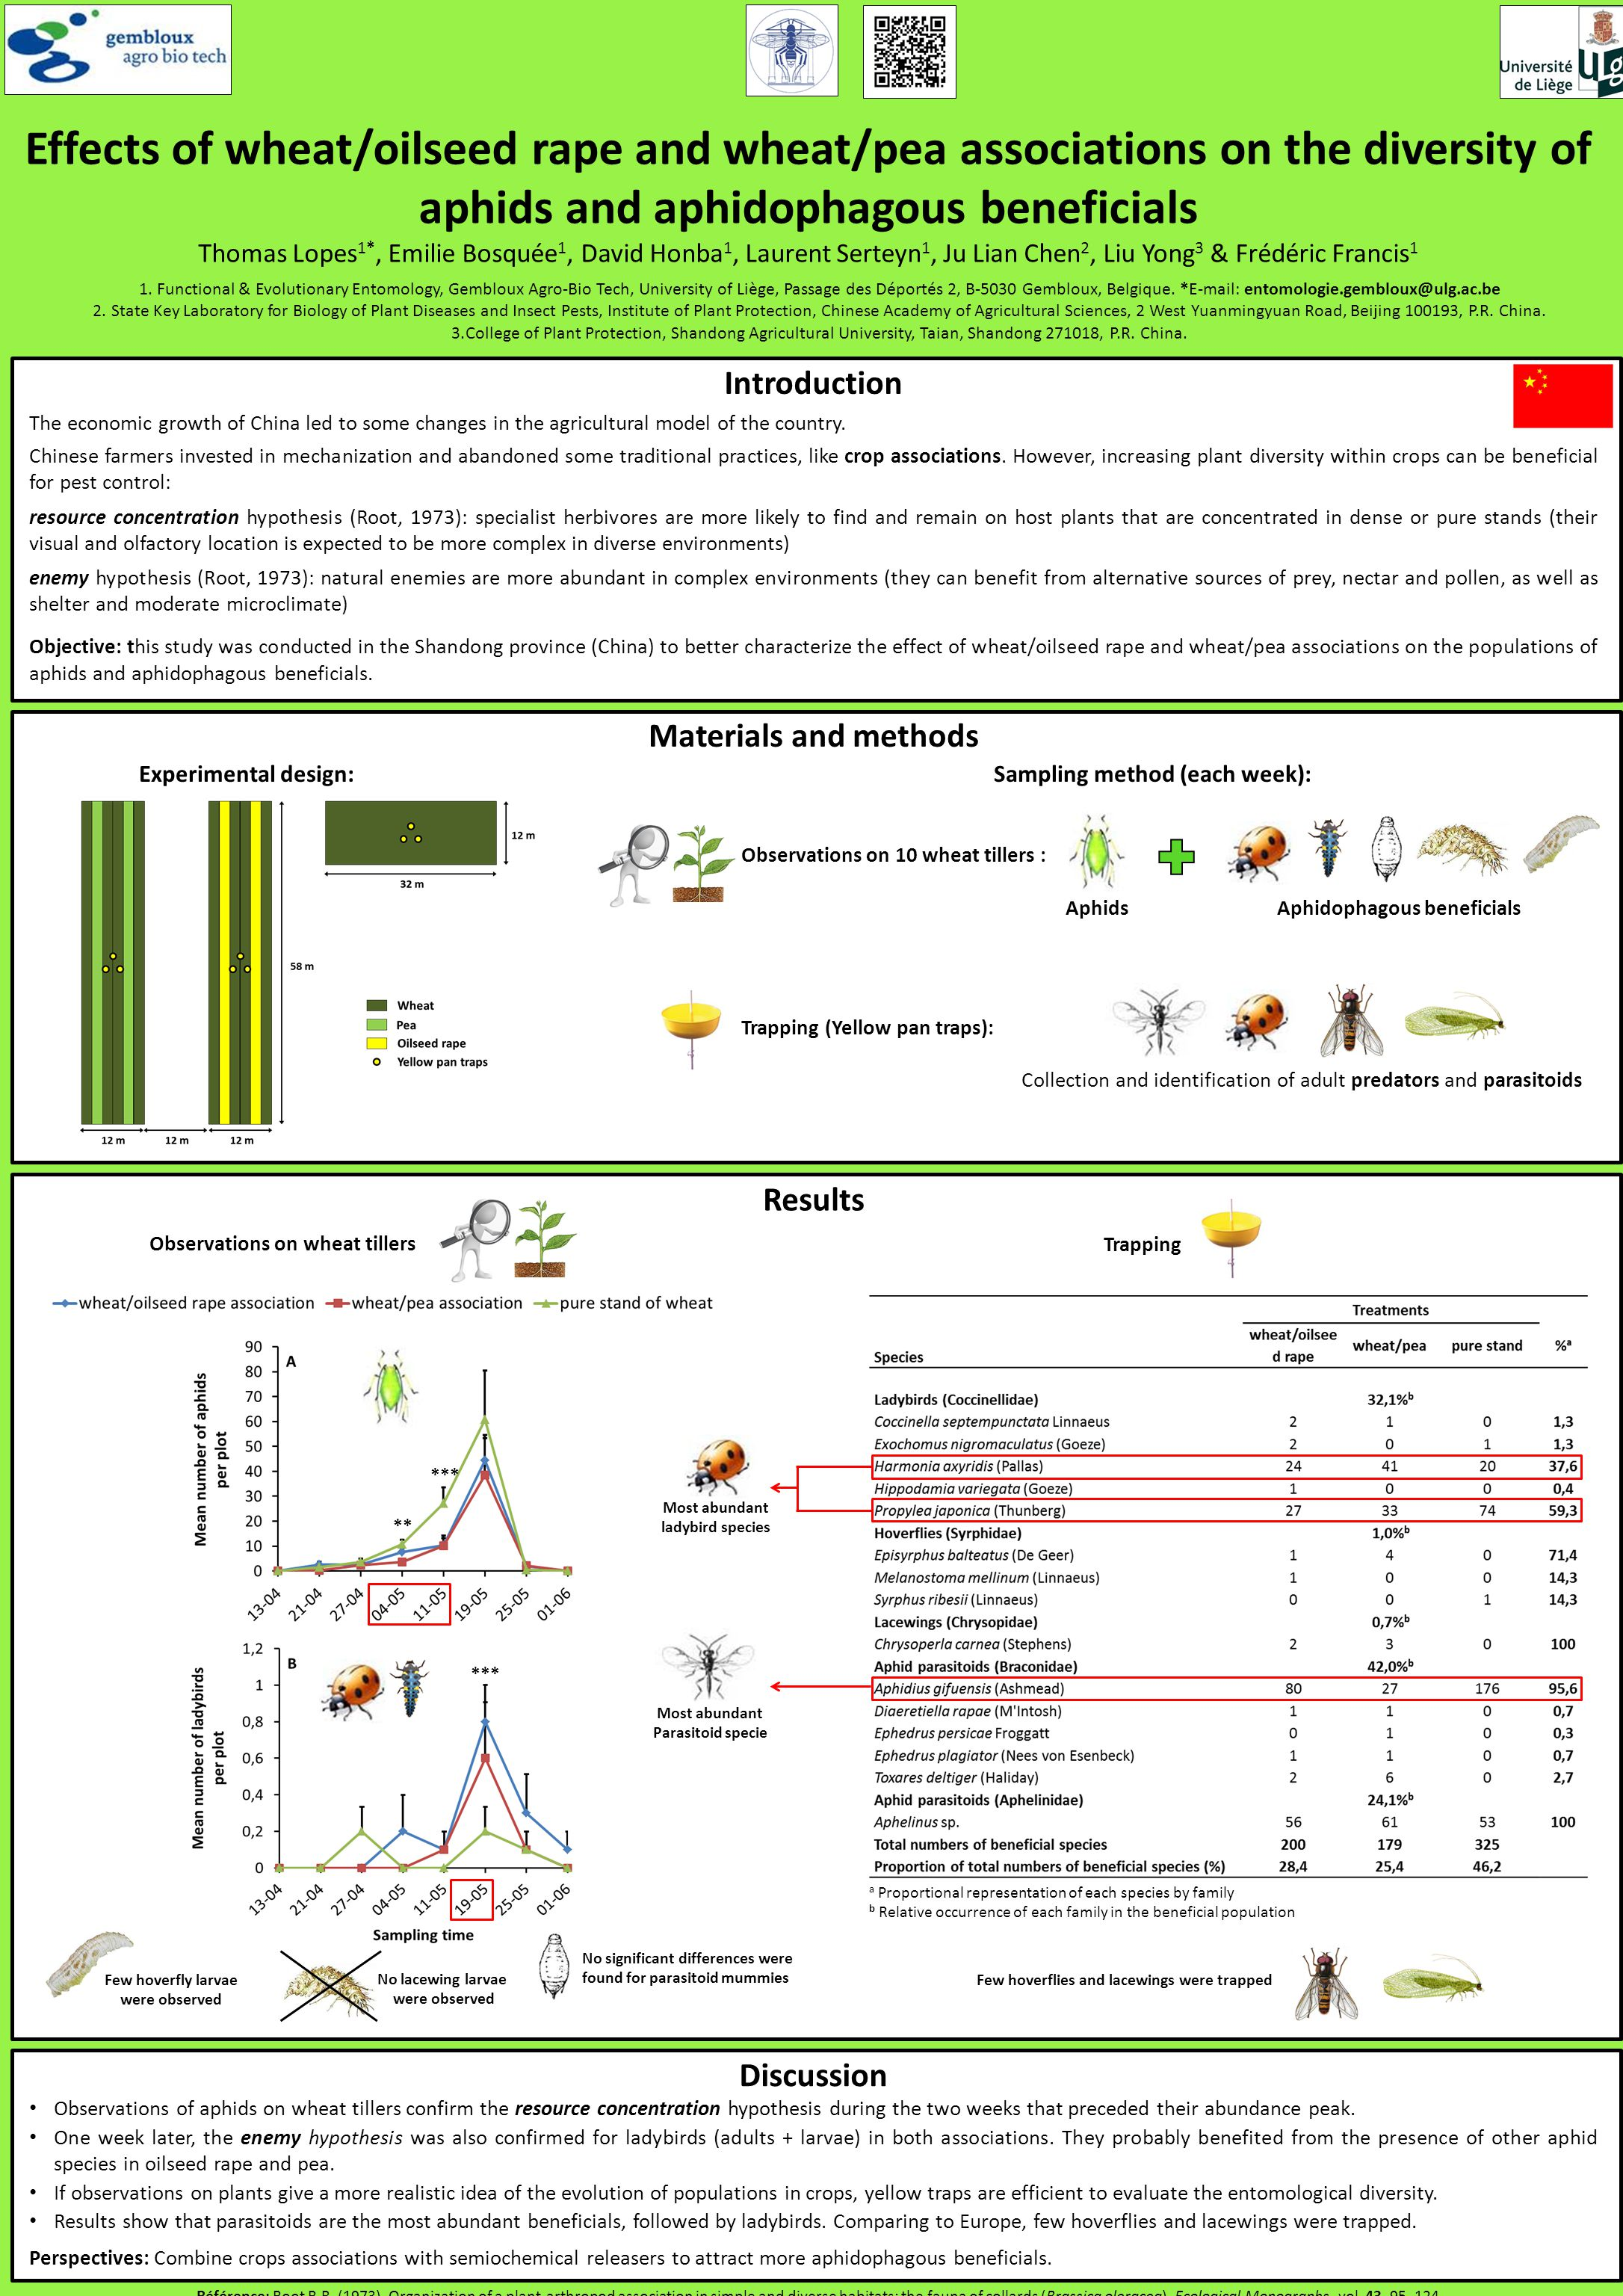 Effects of wheat/oilseed rape and wheat/pea associations on the diversity of aphids and aphidophagous beneficials Thomas Lopes 1*, Emilie Bosquée 1, David Honba 1, Laurent Serteyn 1, Ju Lian Chen 2, Liu Yong 3 & Frédéric Francis 1 1.